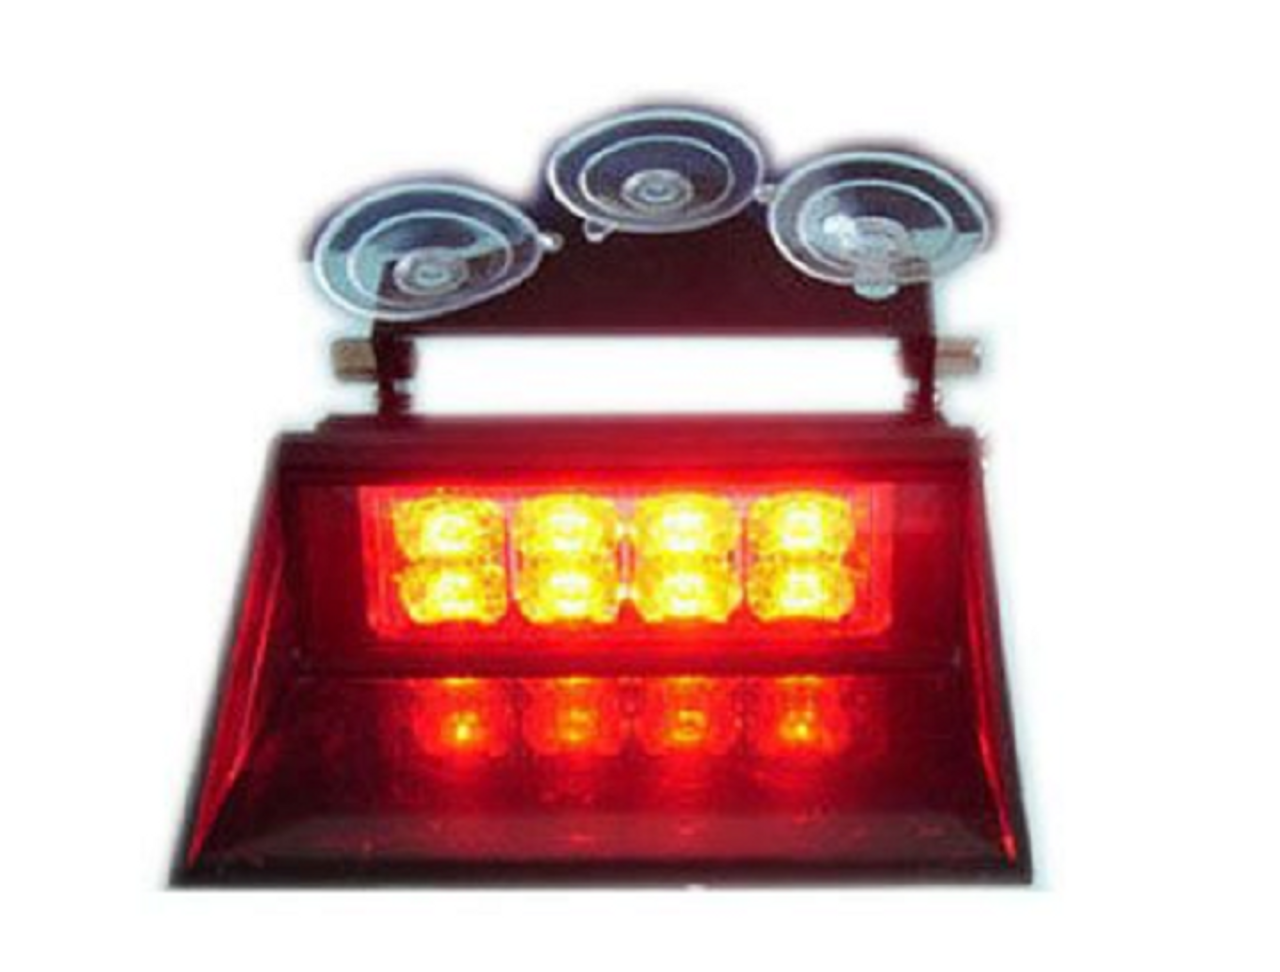 Illuminated Amber Dash Mount, Front Screen Suction Cup Mount Strobe Module. Very Bright. Ultimate LED Australia.